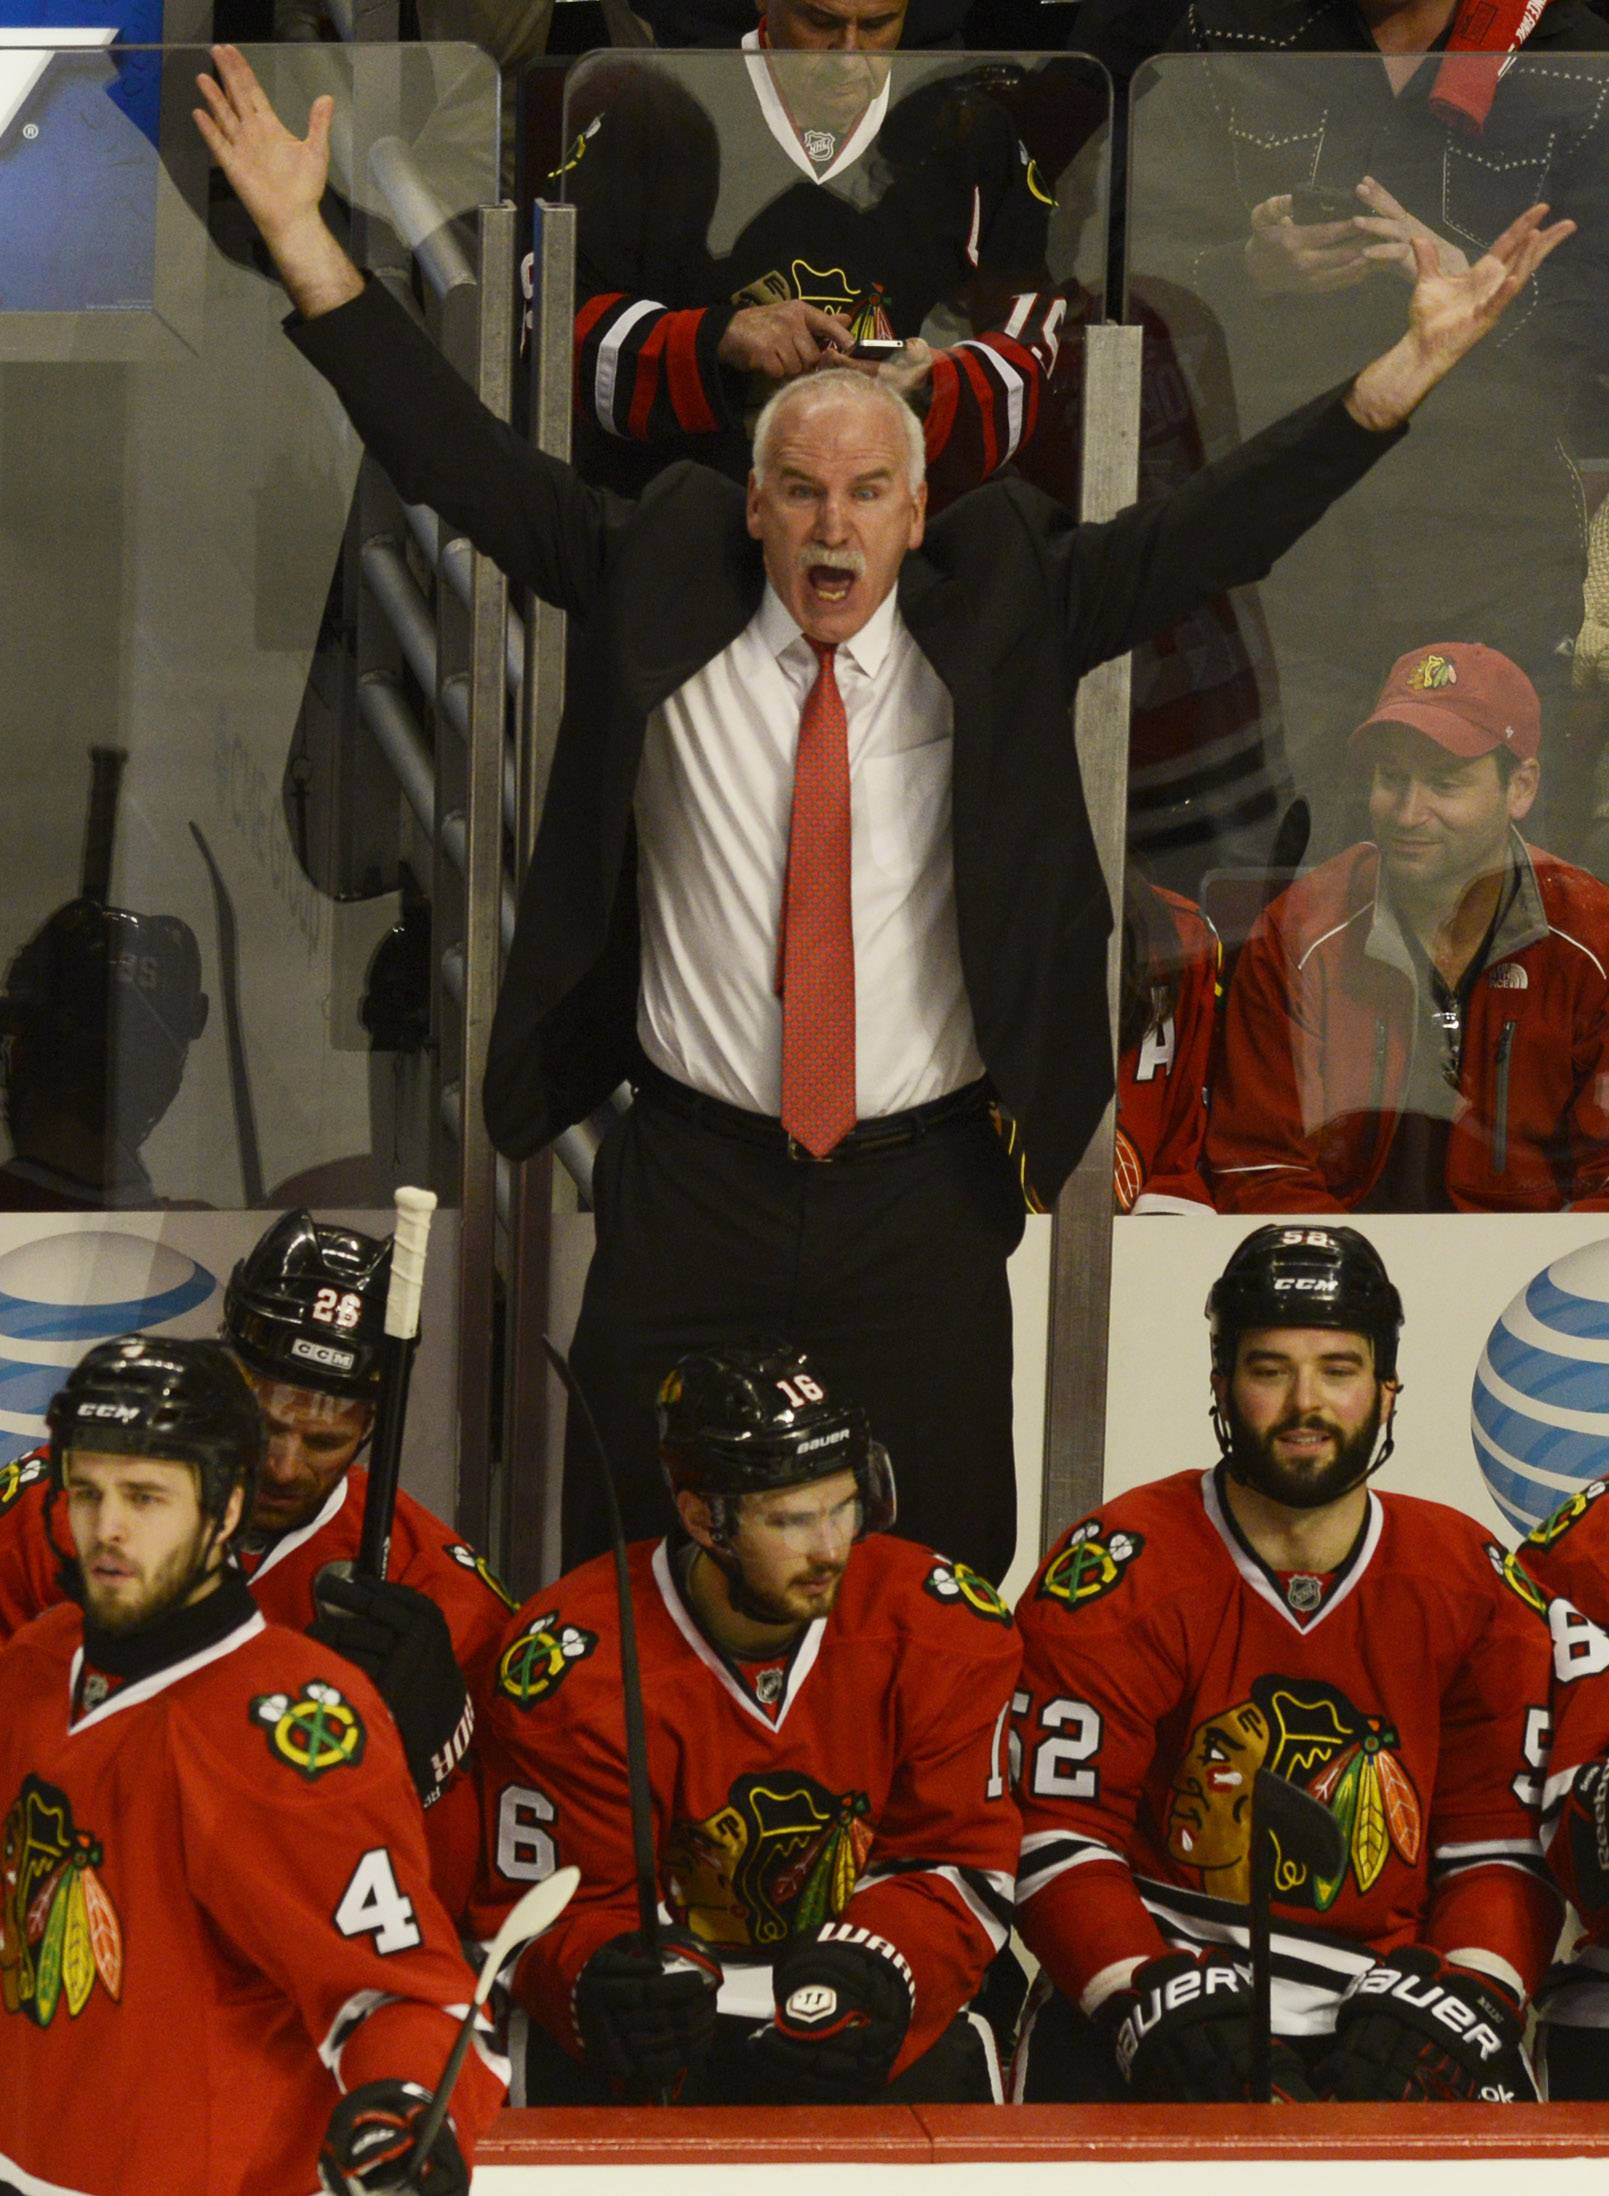 Chicago Blackhawks coach Joel Quenneville shows his displeasure from the bench after a second-period goal was disallowed.